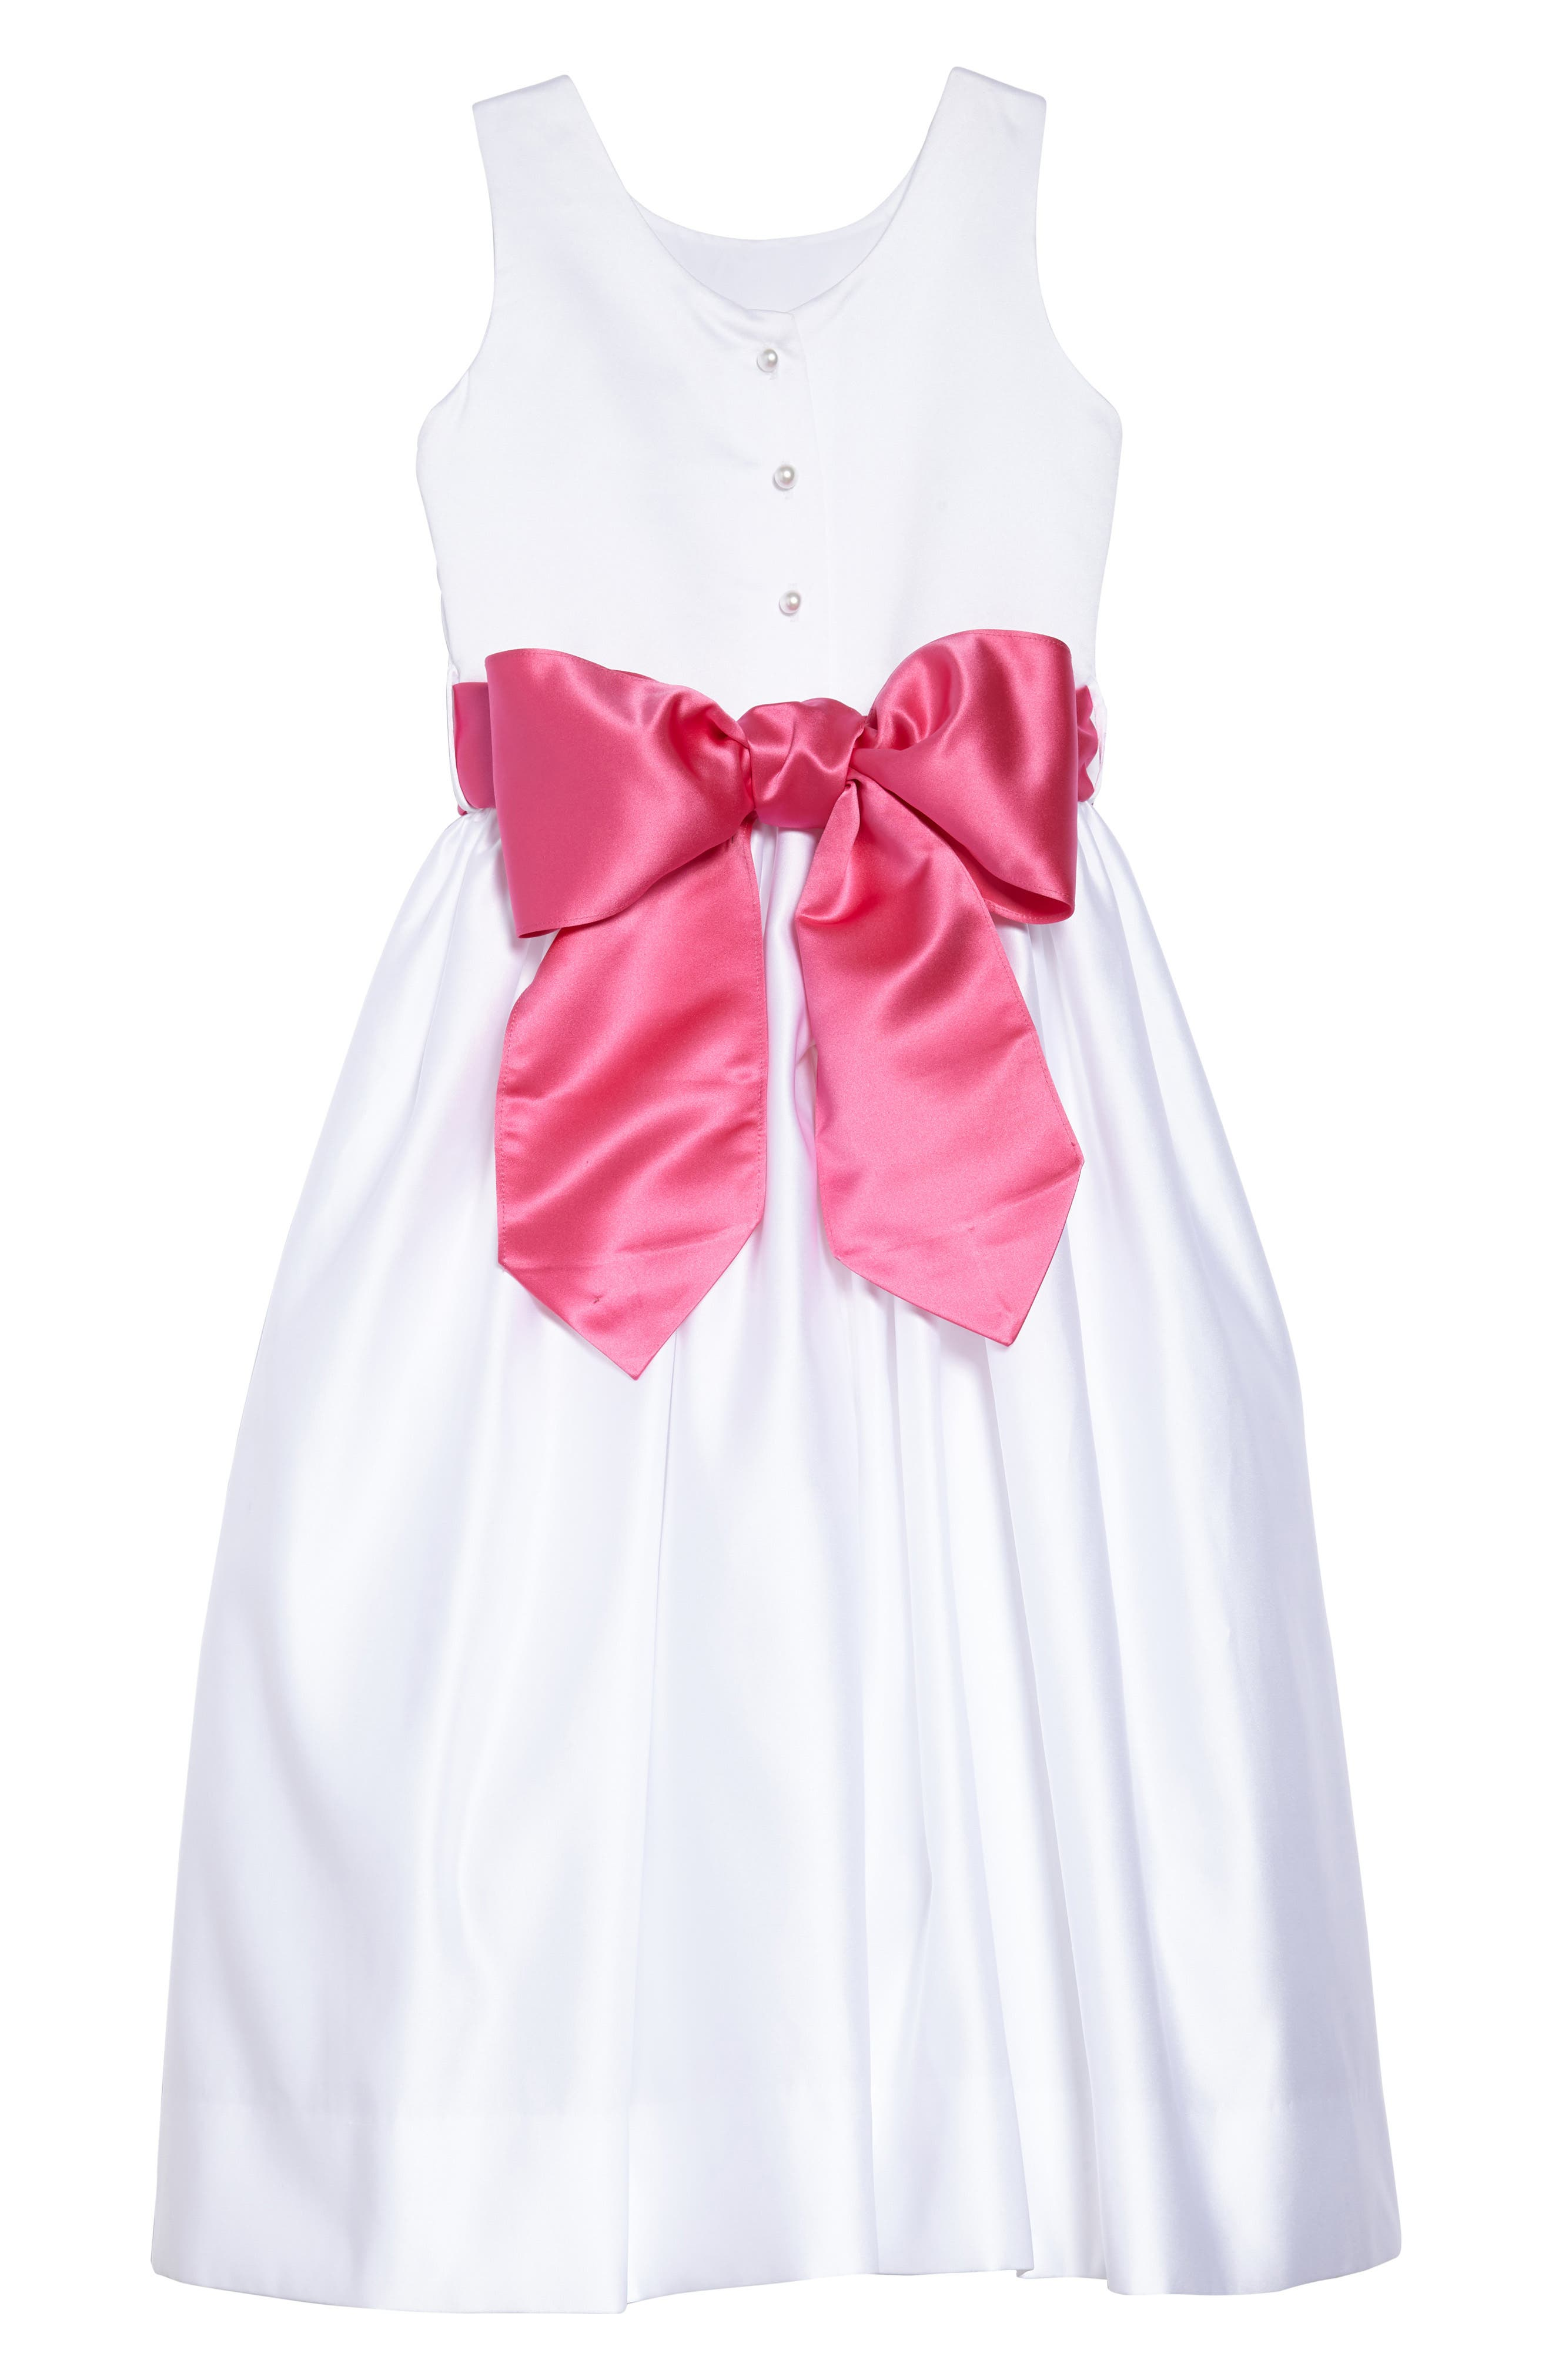 White Tank Dress with Satin Sash,                             Alternate thumbnail 2, color,                             WHITE/ FUCHSIA